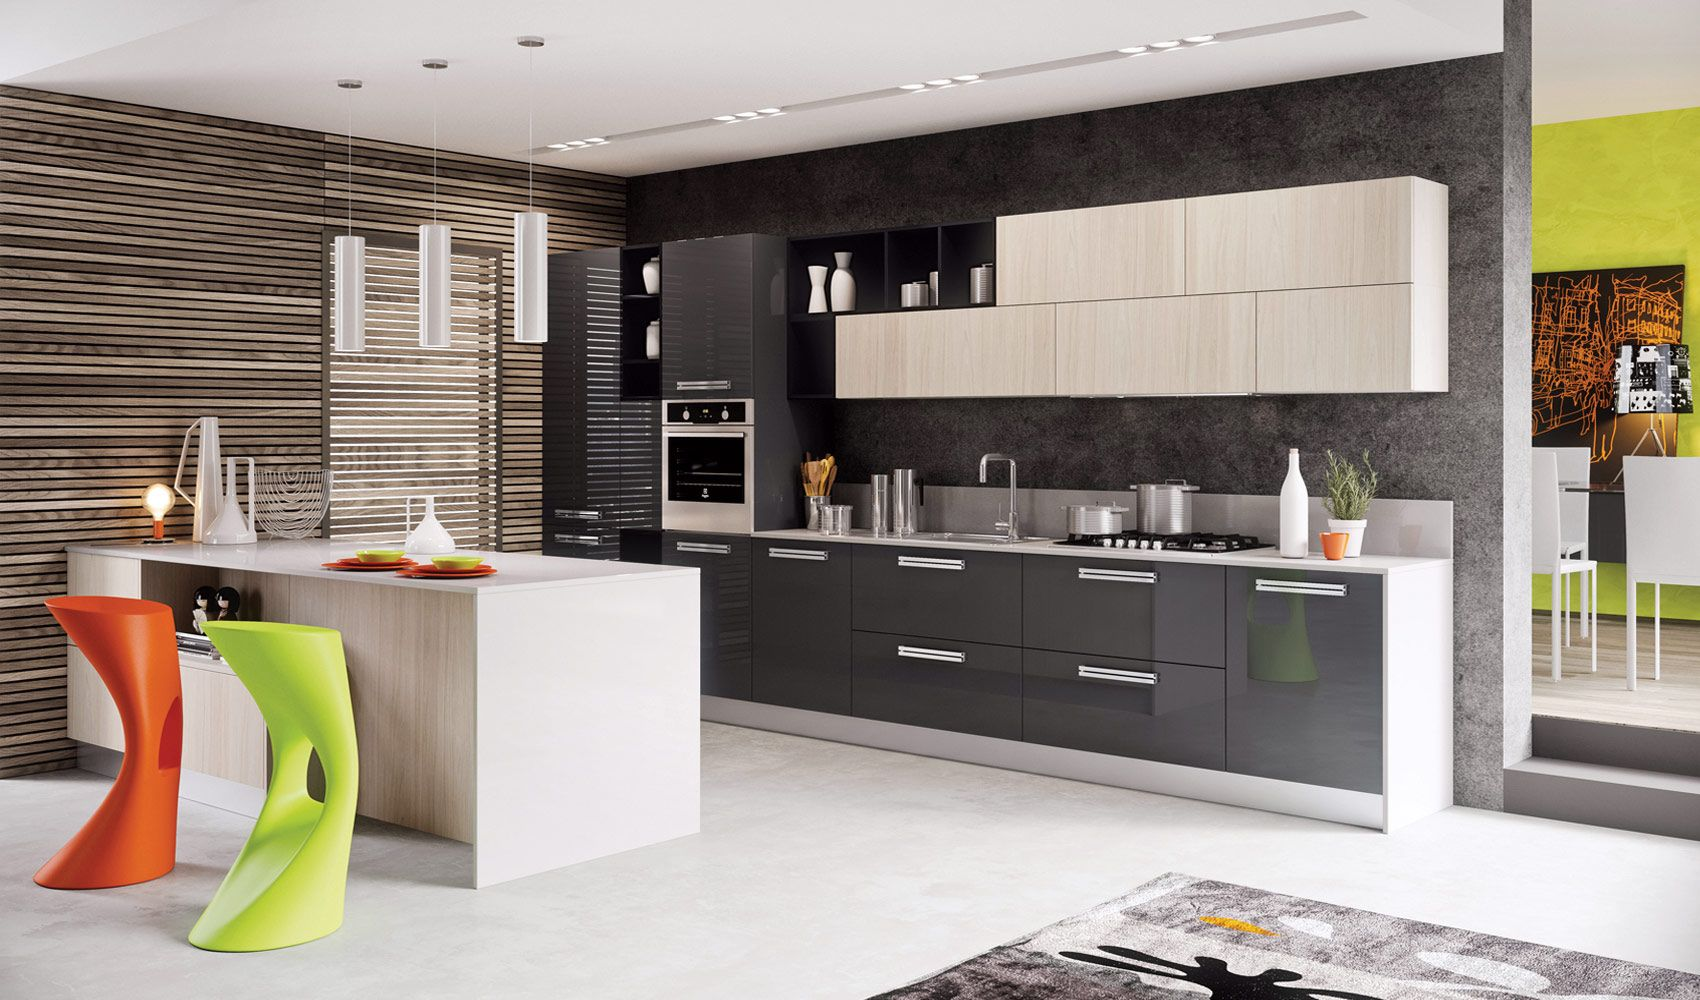 Contemporary kitchen design ideas kitchens pinterest for Modern kitchen design ideas